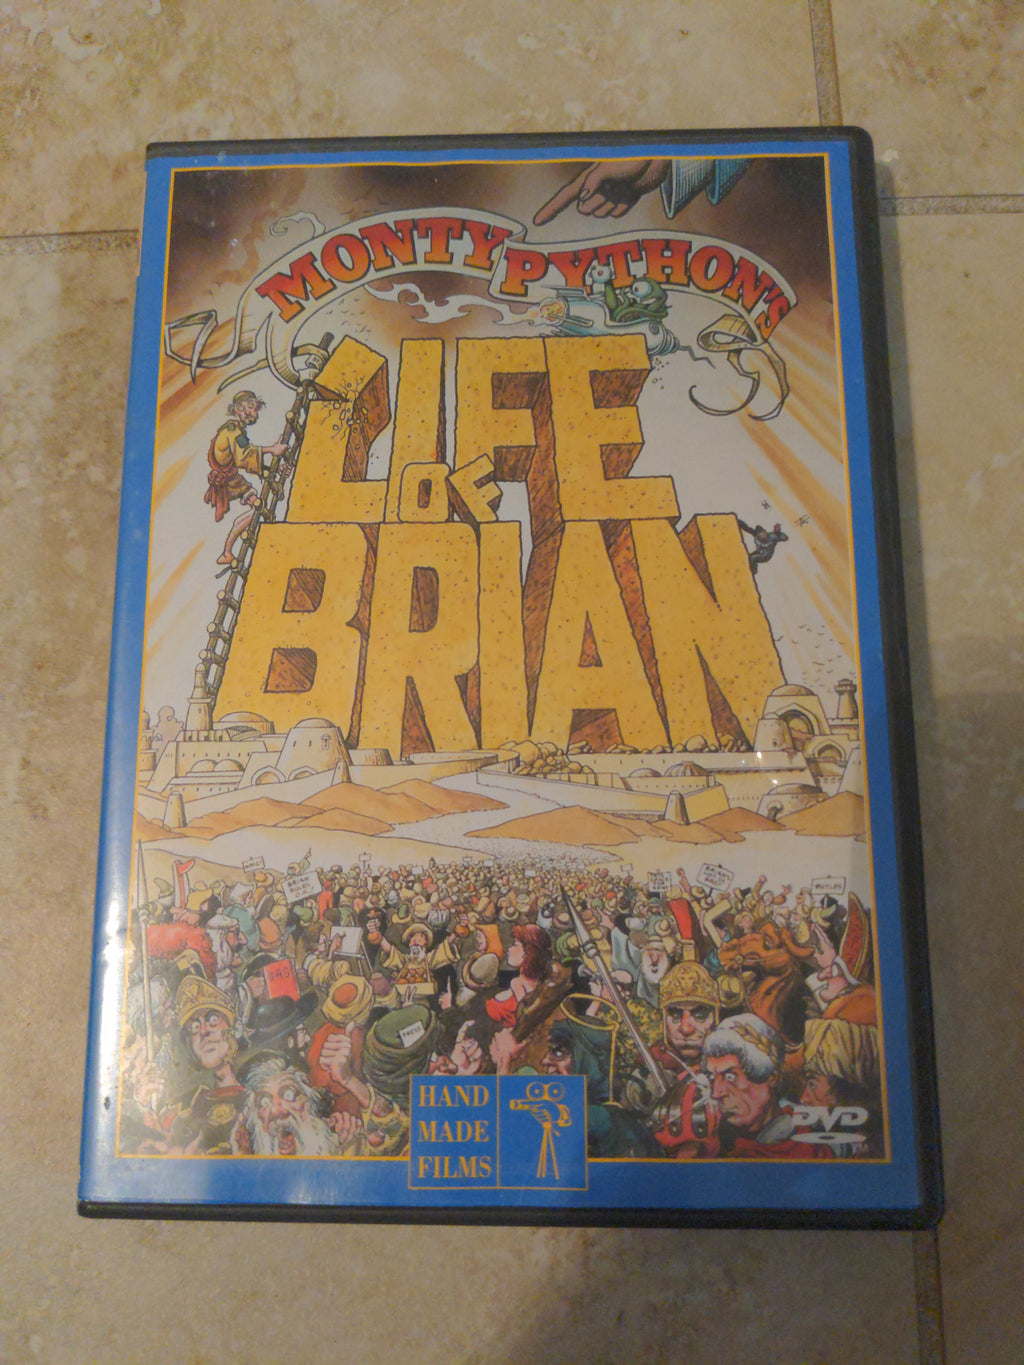 Monty Python's The Life Of Brian DVD